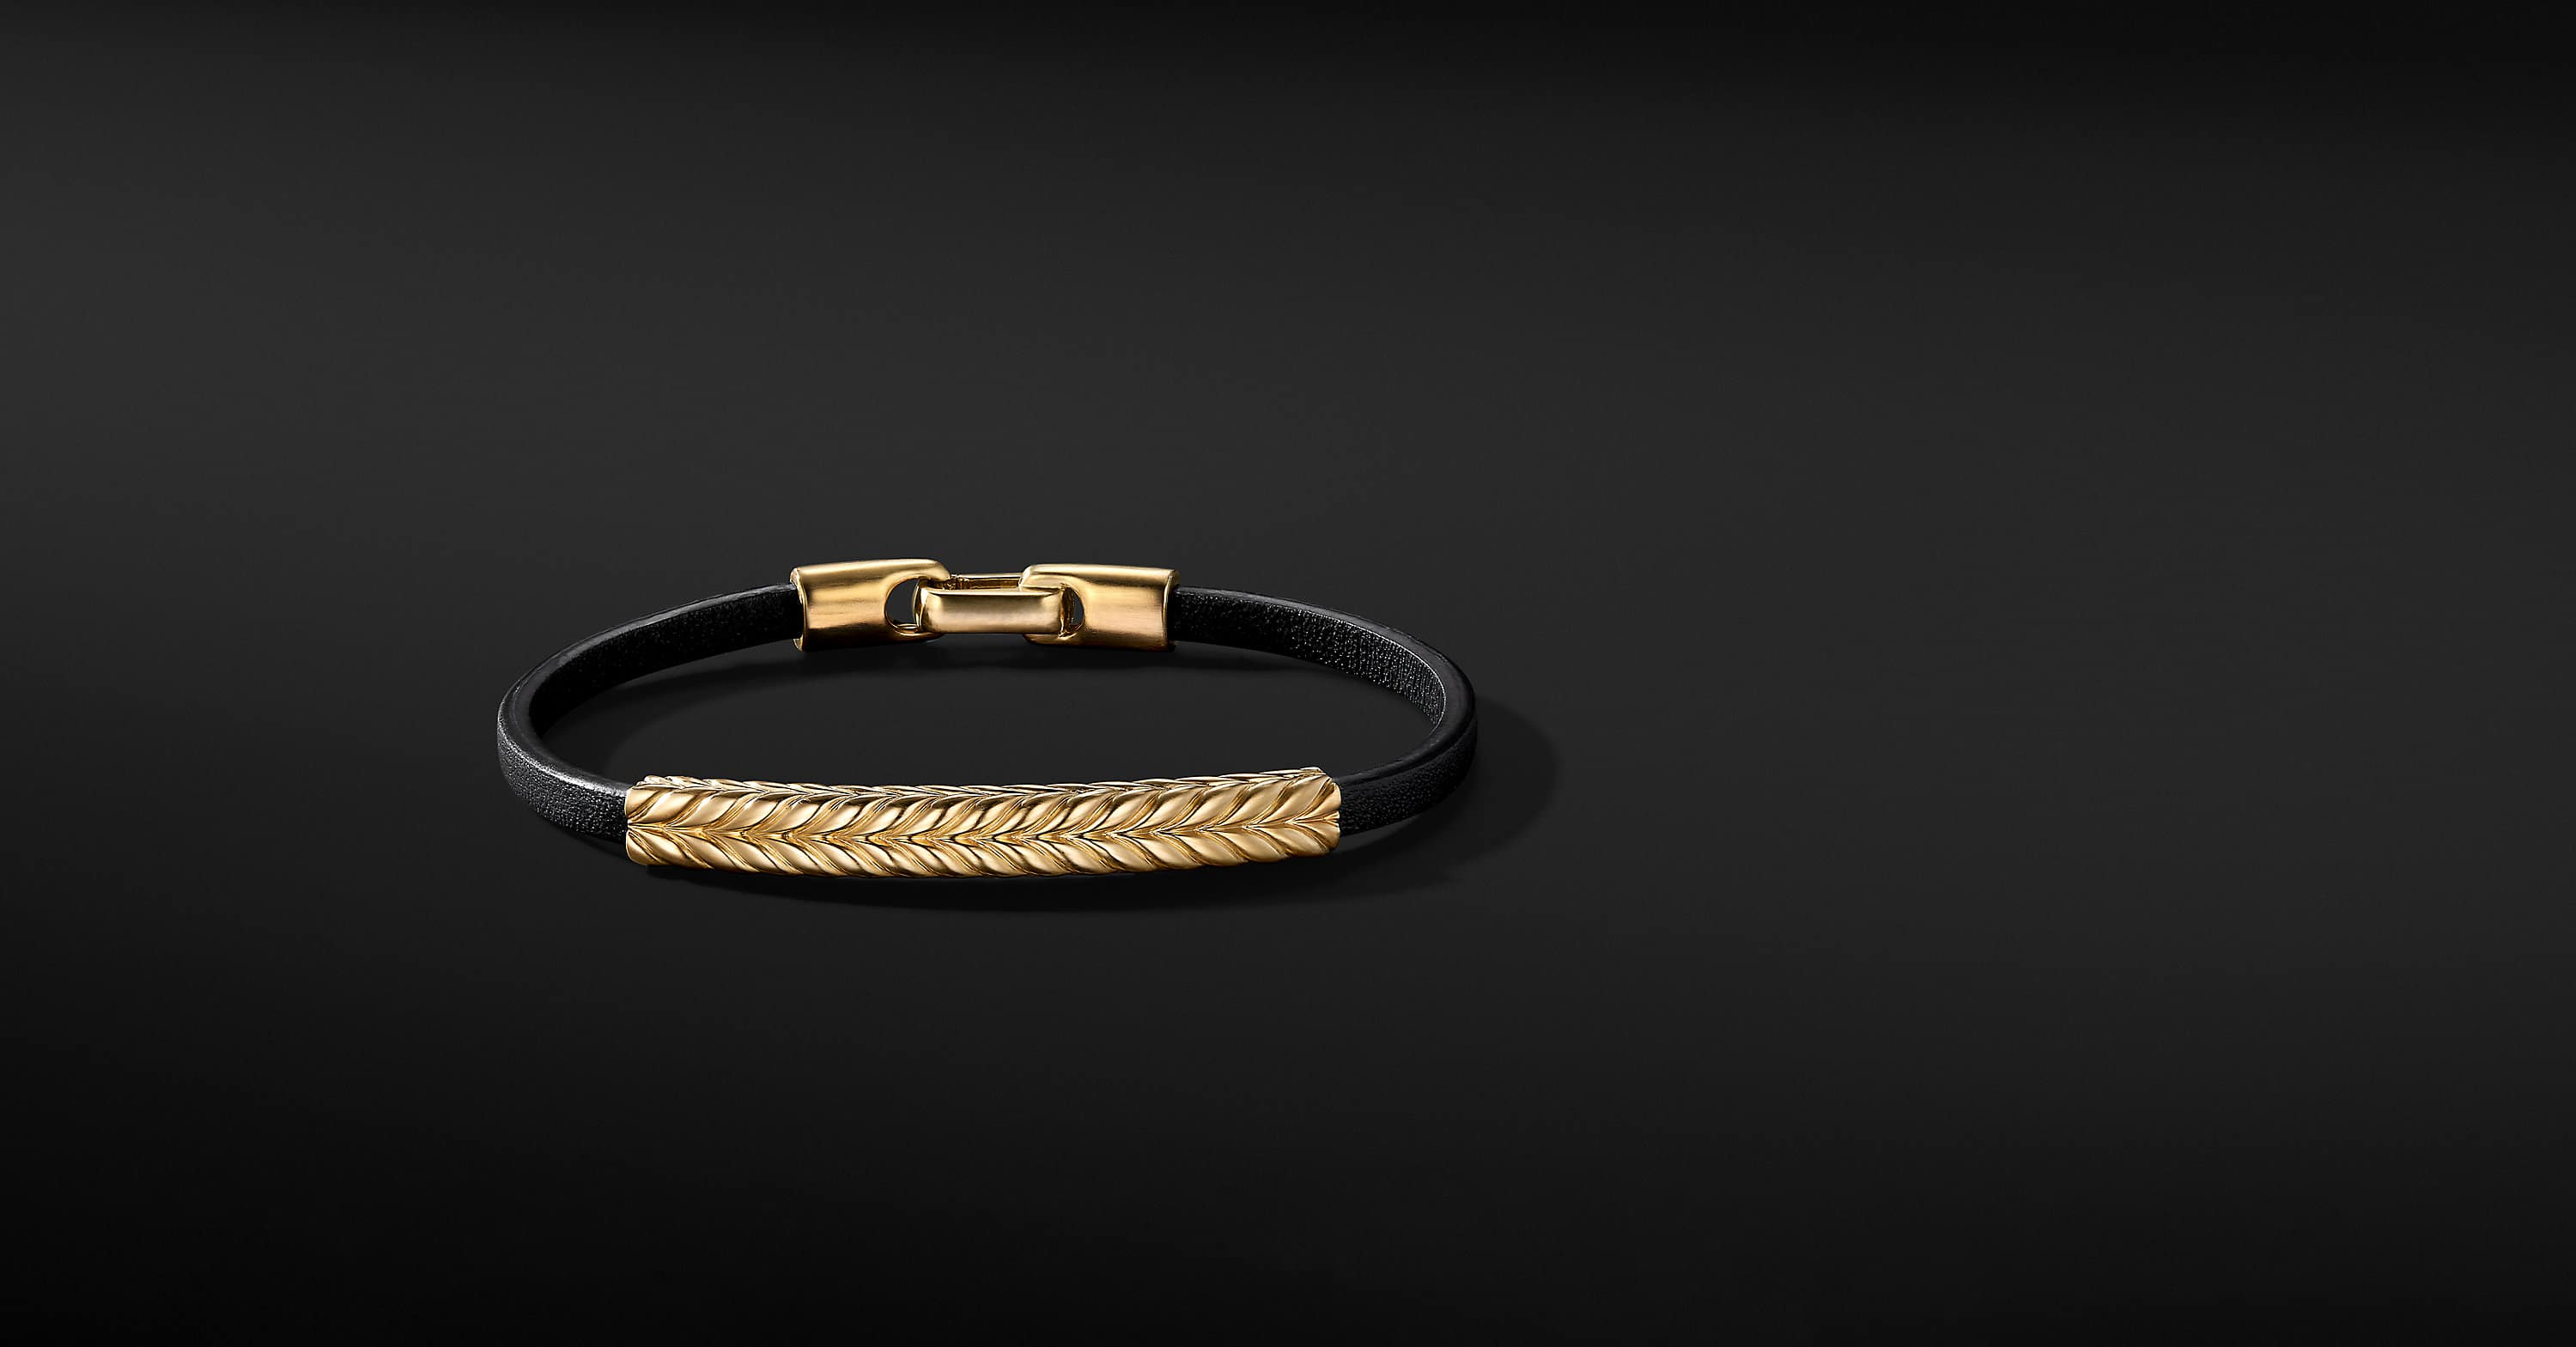 Chevron Leather ID Bracelet with 18K Yellow Gold